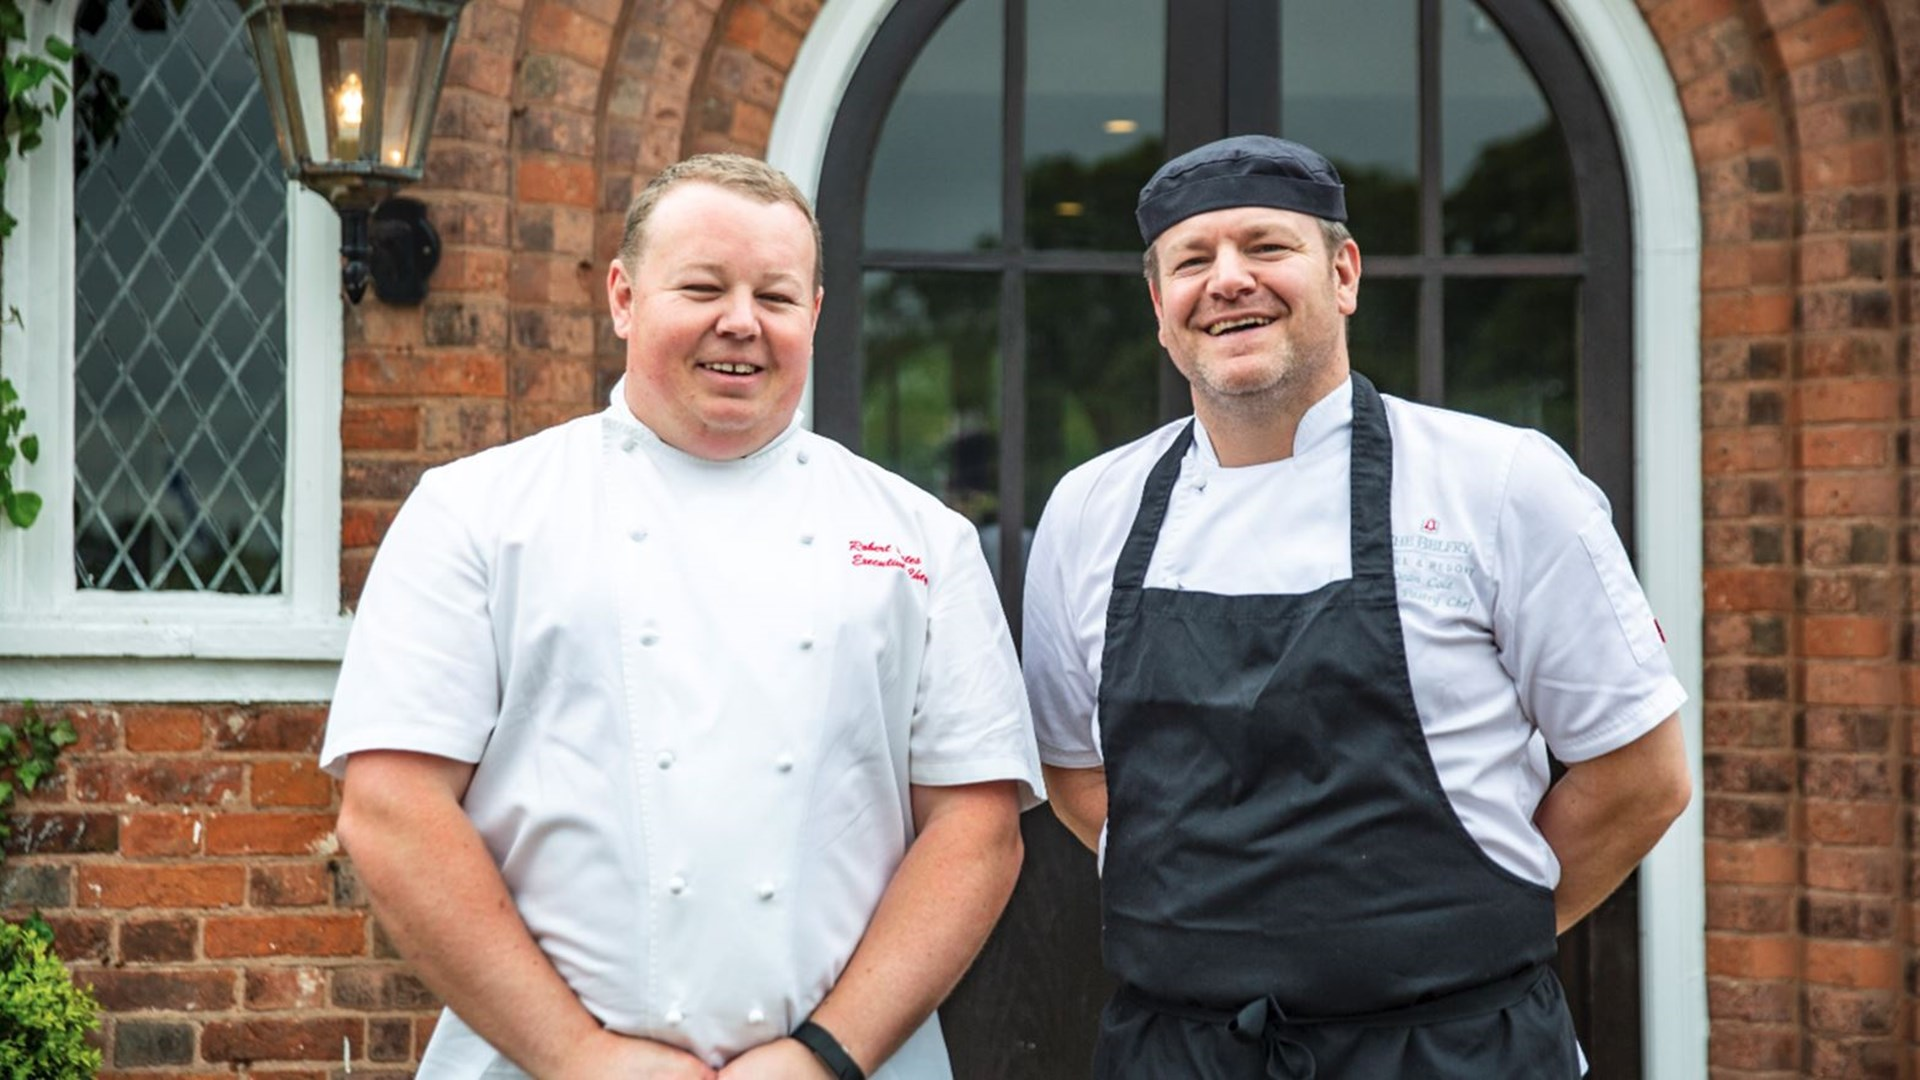 Chefs at The Belfry